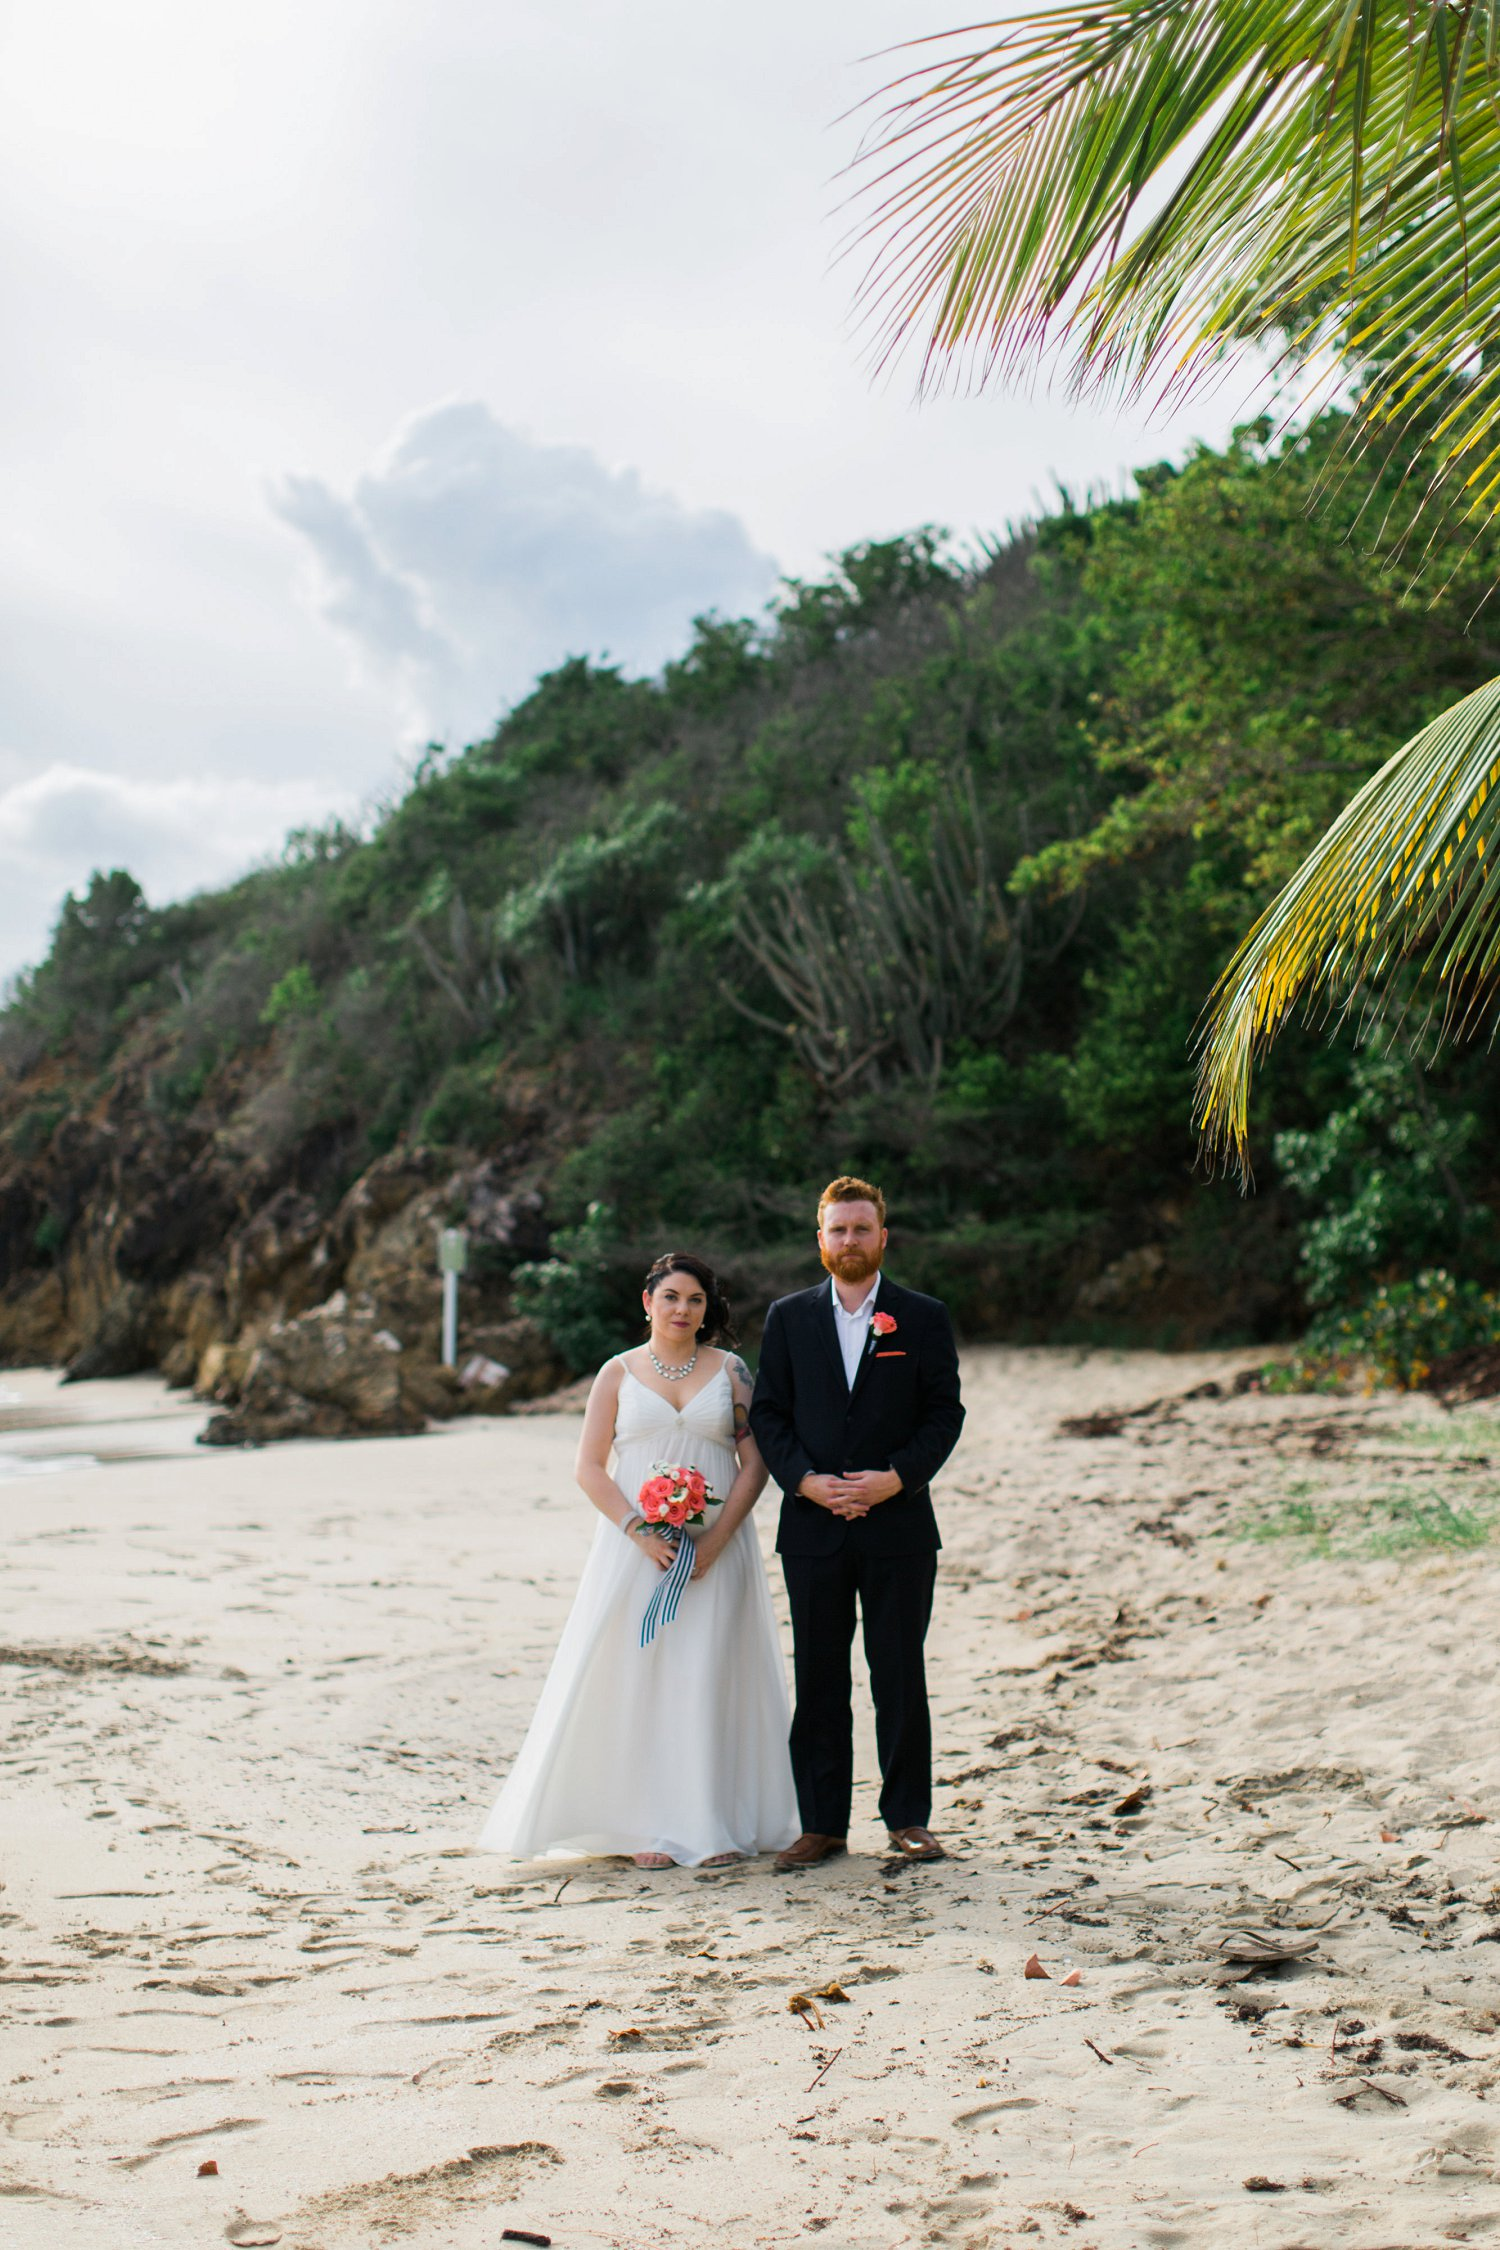 Classic bride and groom beach portrait.